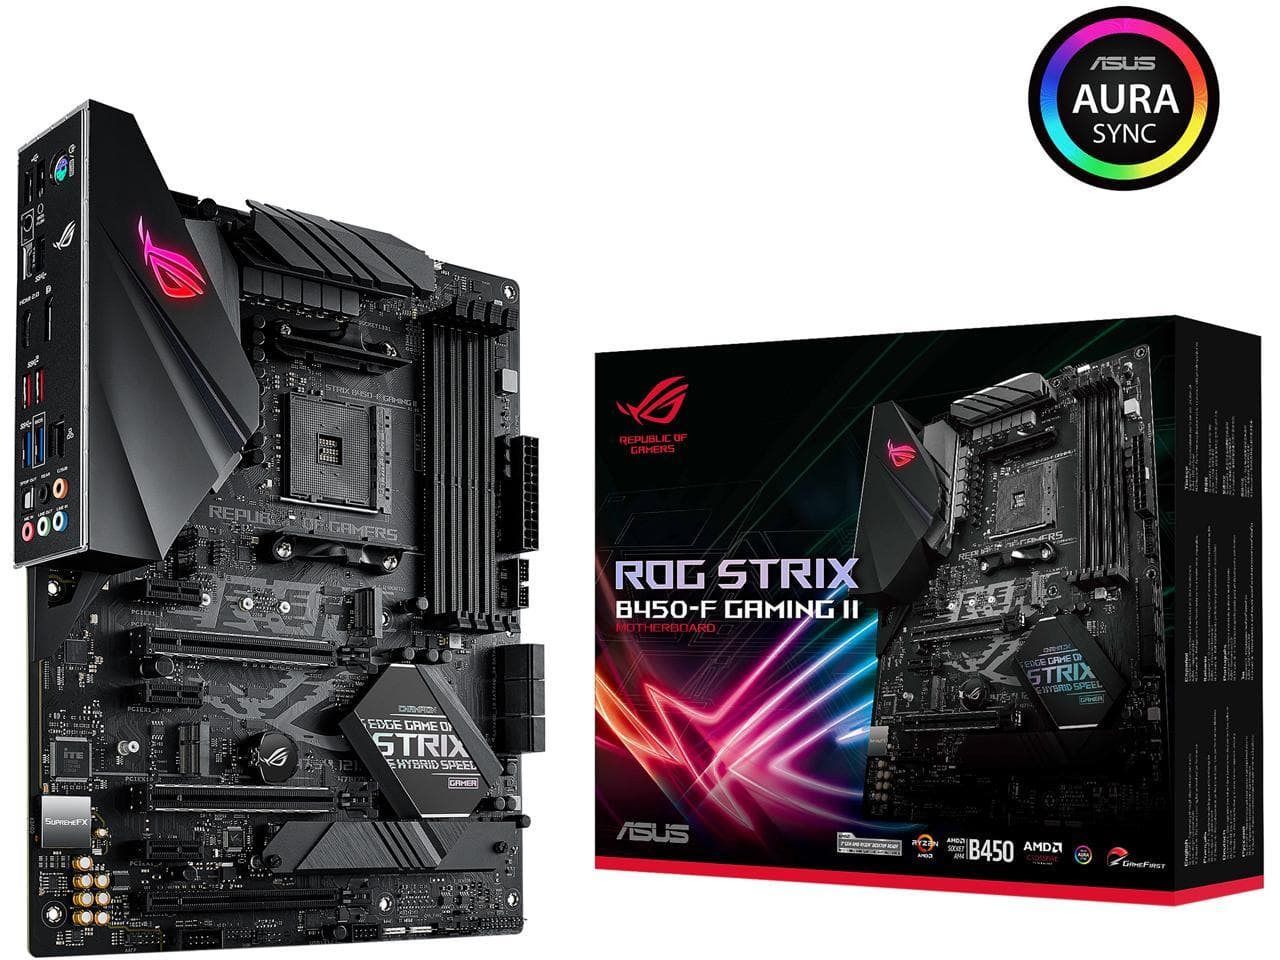 (24 hours only - Starts 7/23) ASUS ROG Strix B450-F Gaming II Motherboard for $109.99 w/ FS